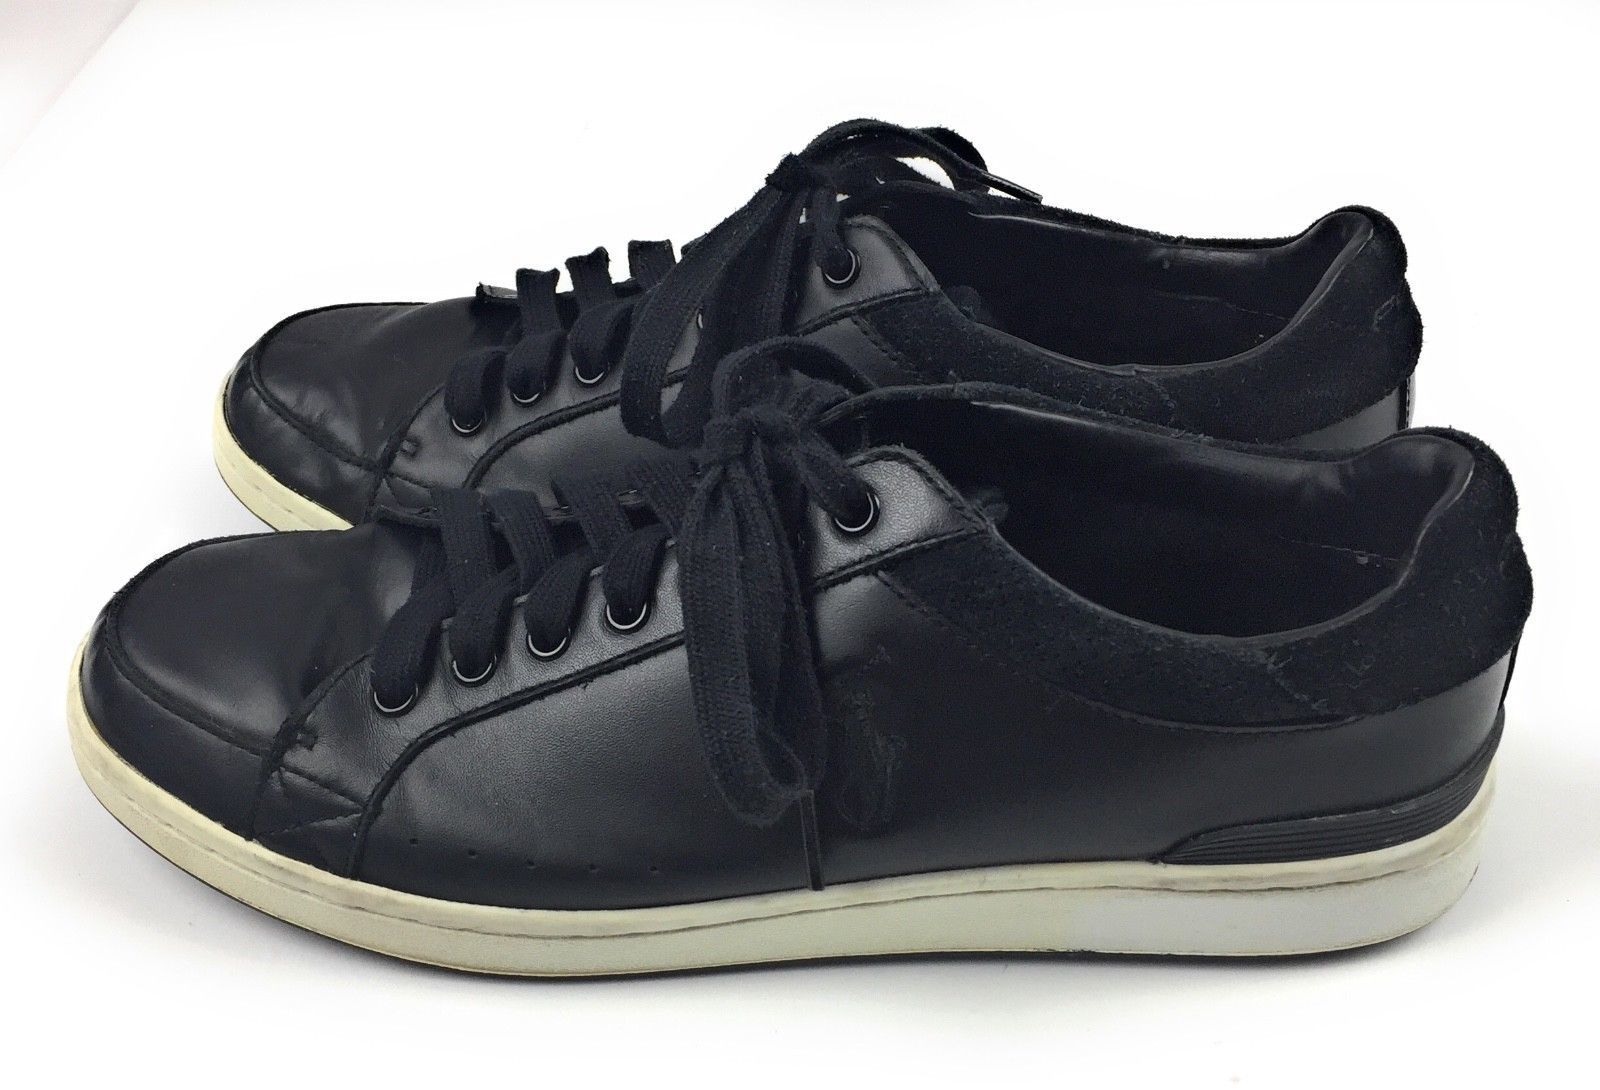 Polo by Ralph Lauren Talbert Black Leather Sneakers Shoes Mens 10.5D